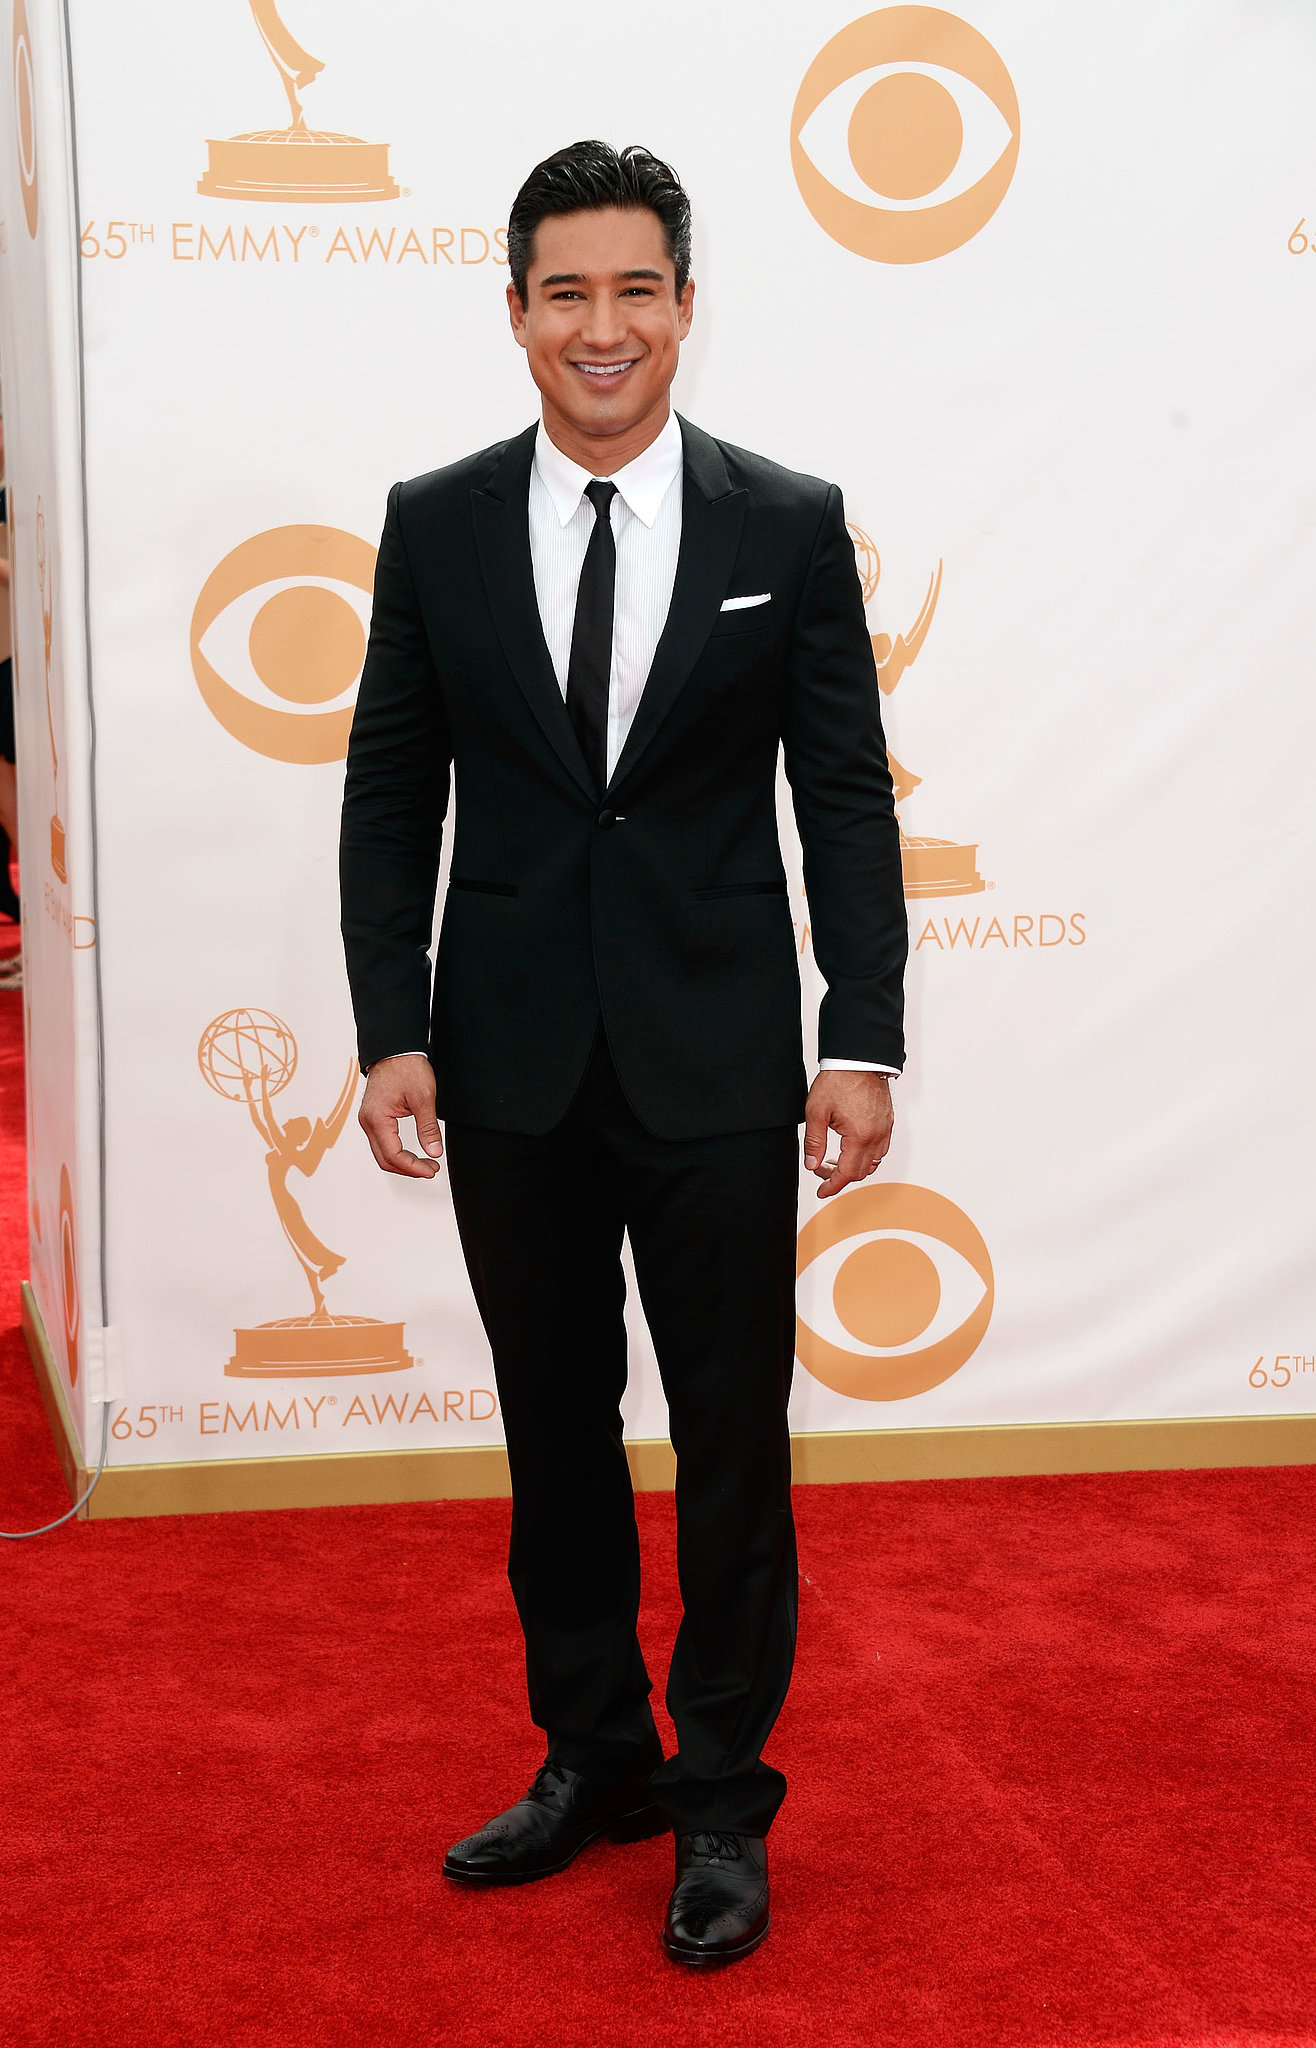 Mario Lopez sported a dapper look for Emmys night.